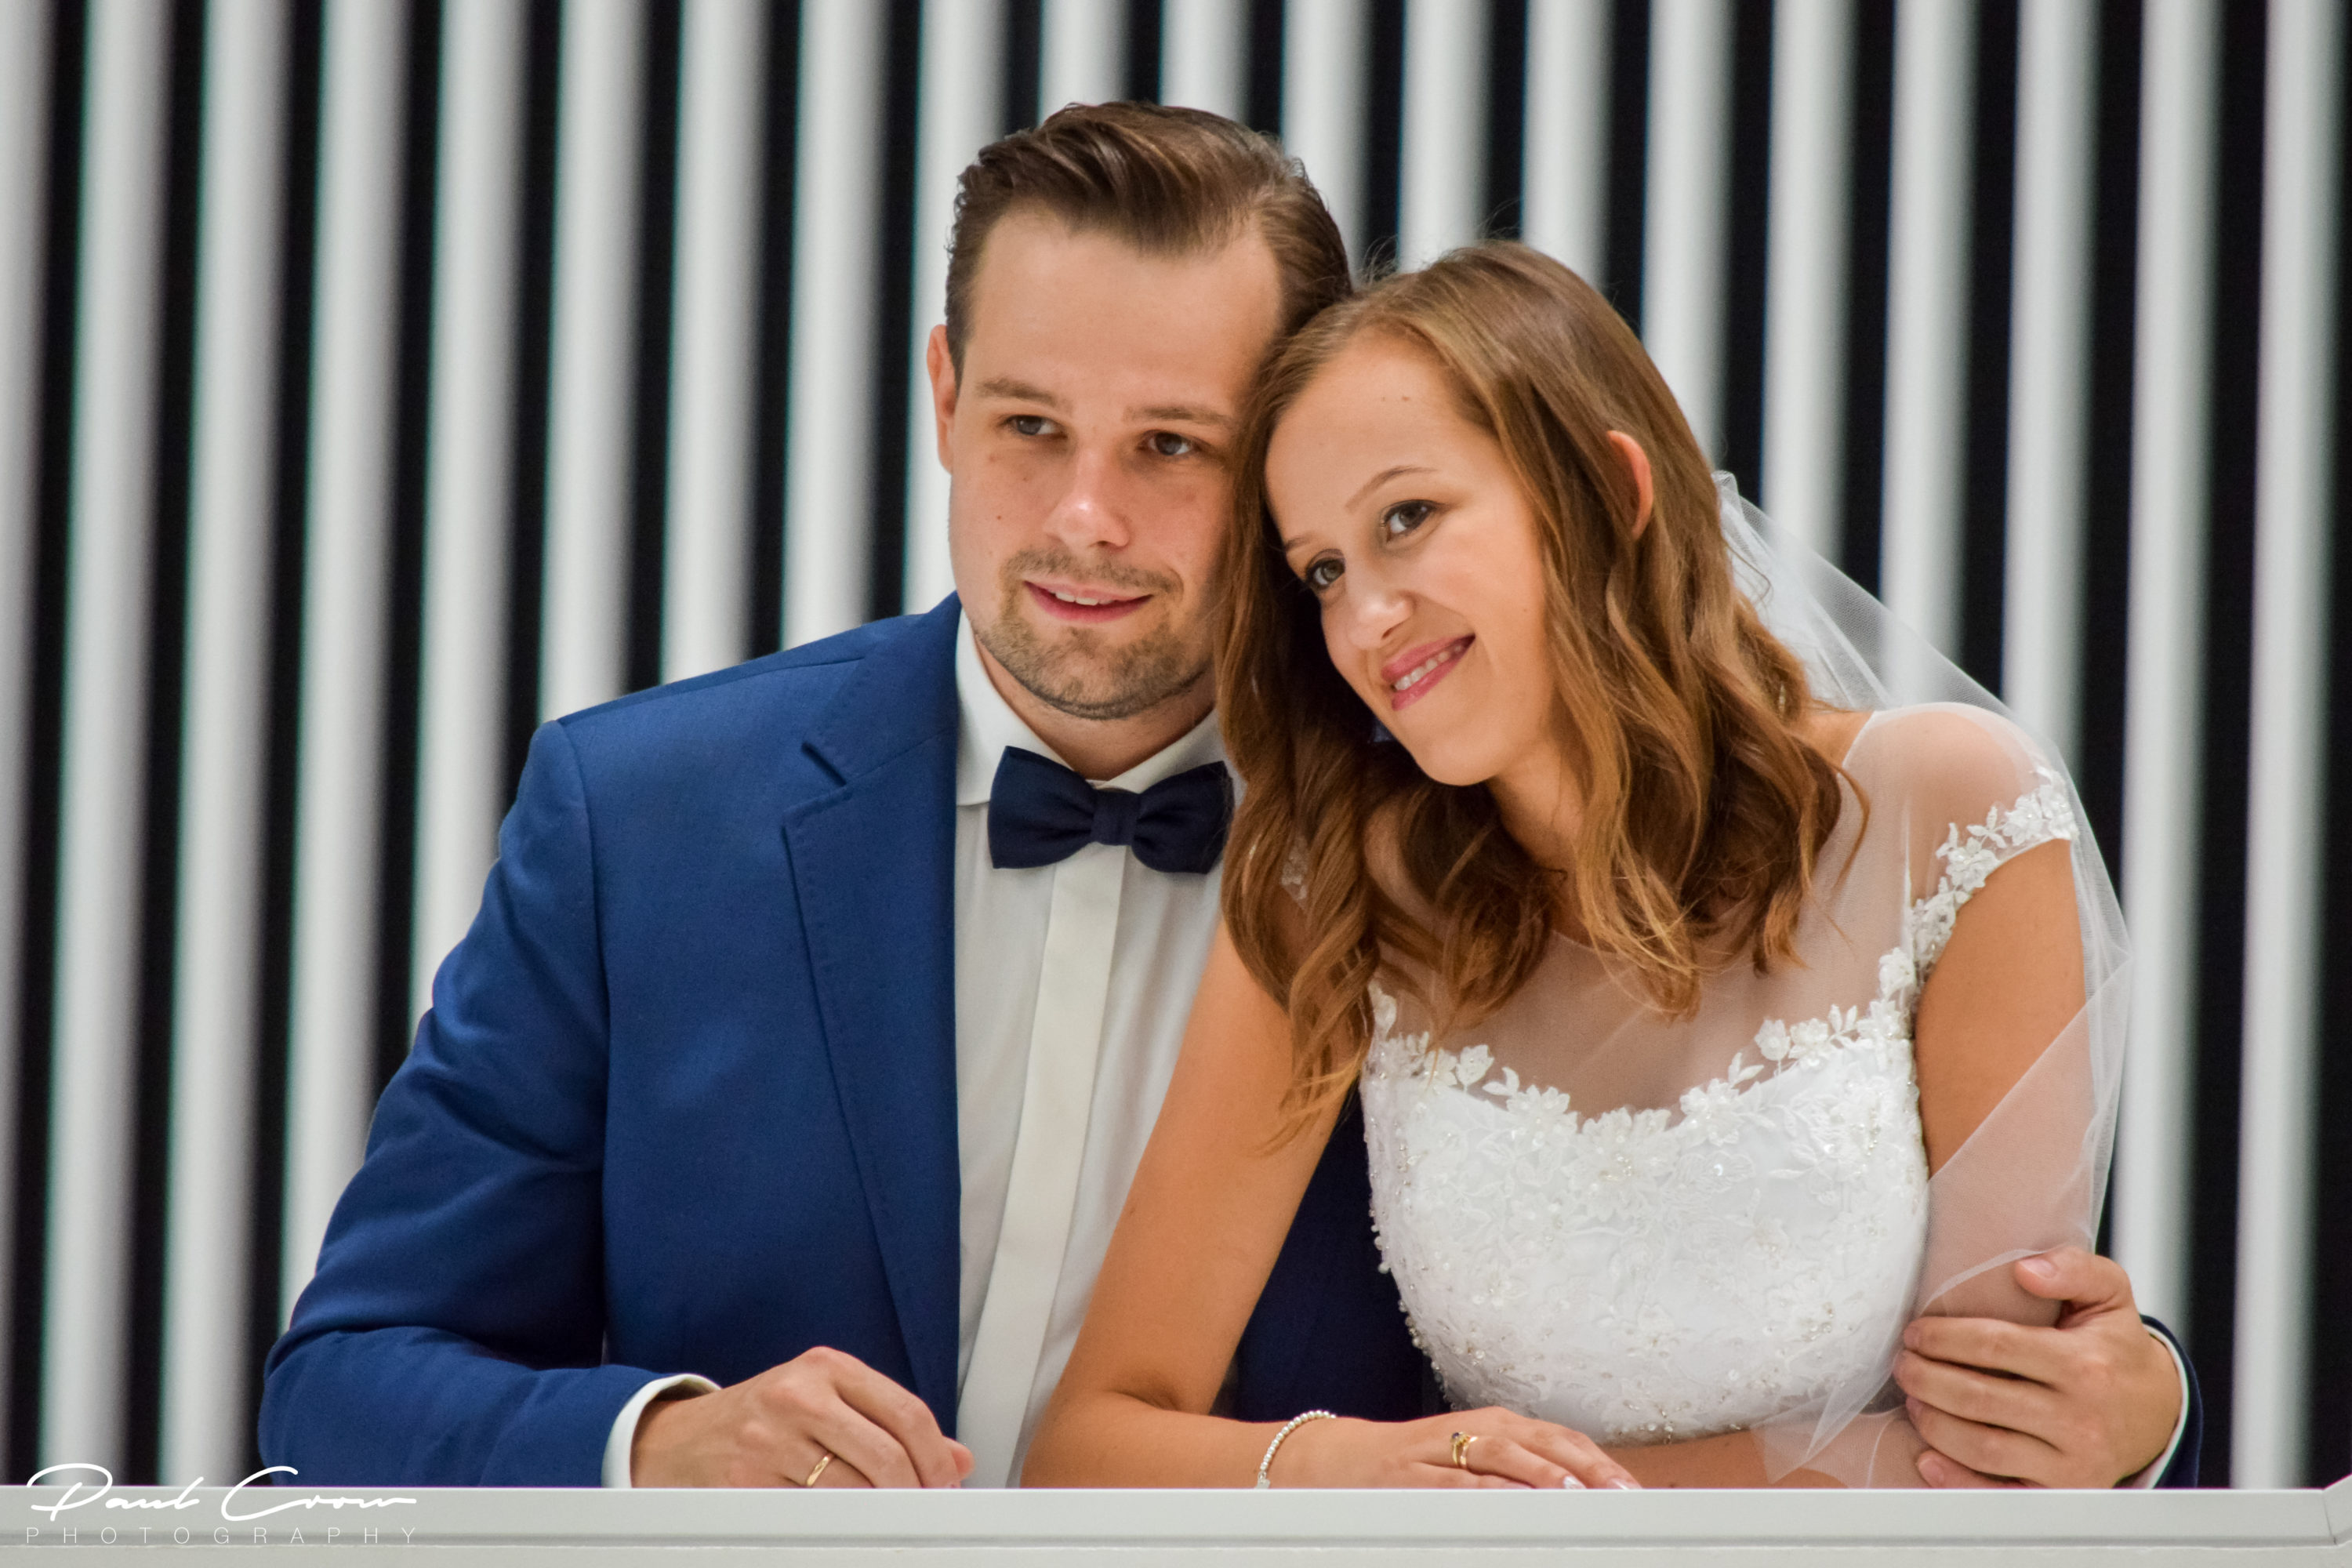 The Perfect Day – Wedding